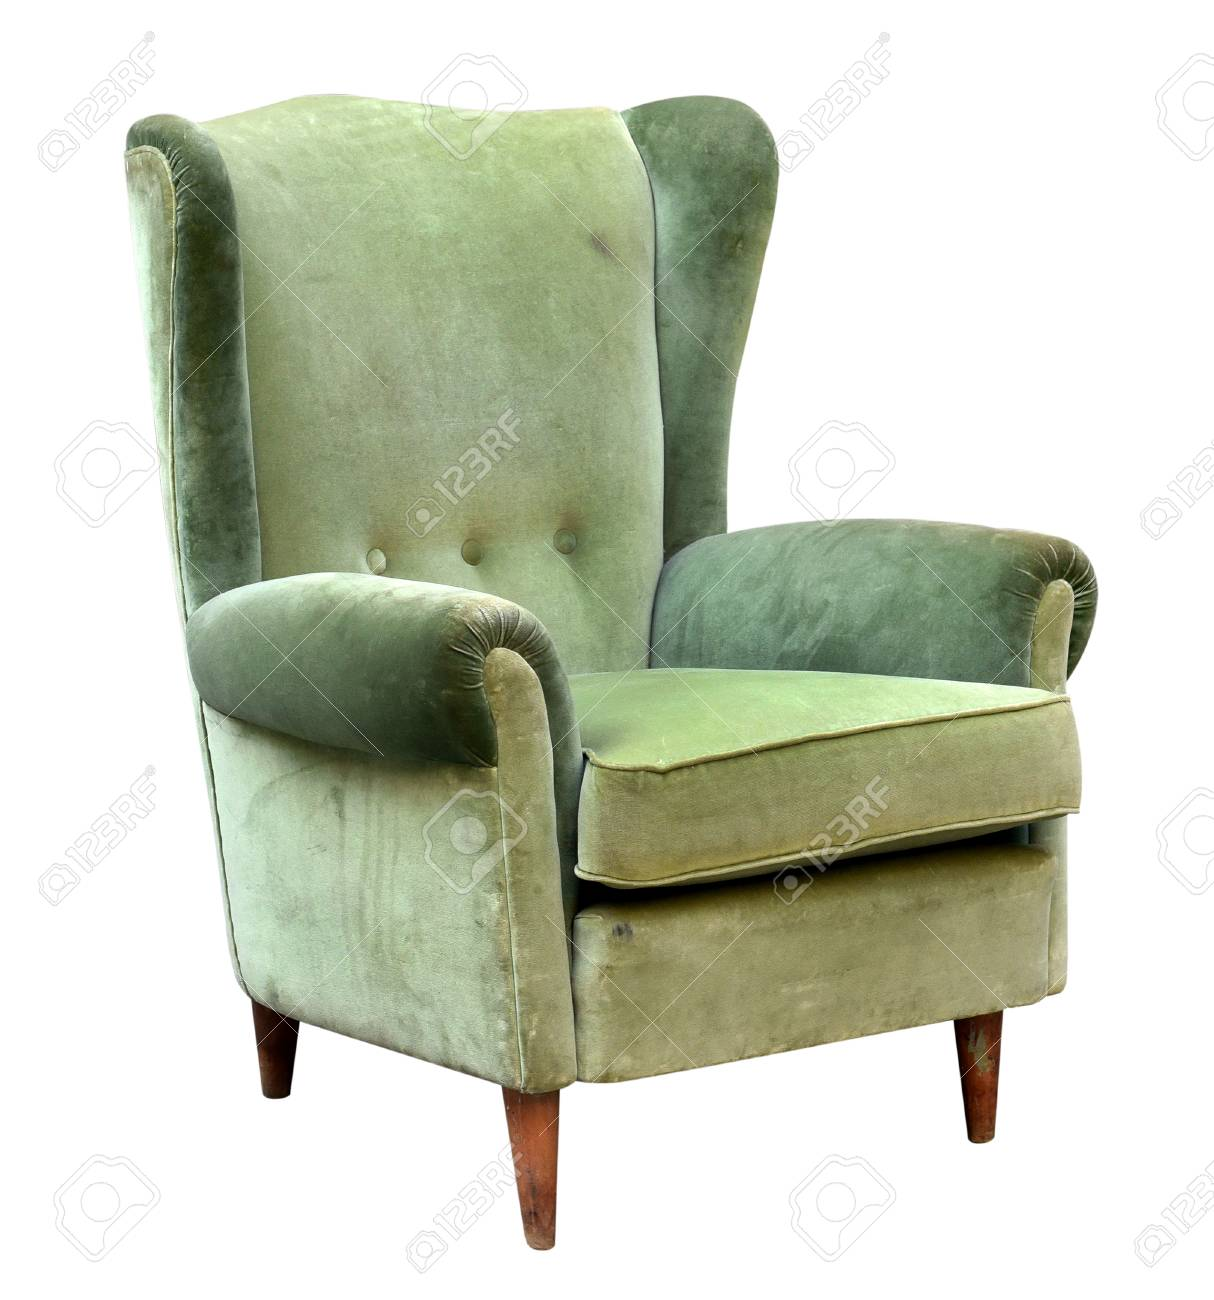 Green Upholstered Chair Vintage Upholstered Green Velvet Armchair With A High Wing Back